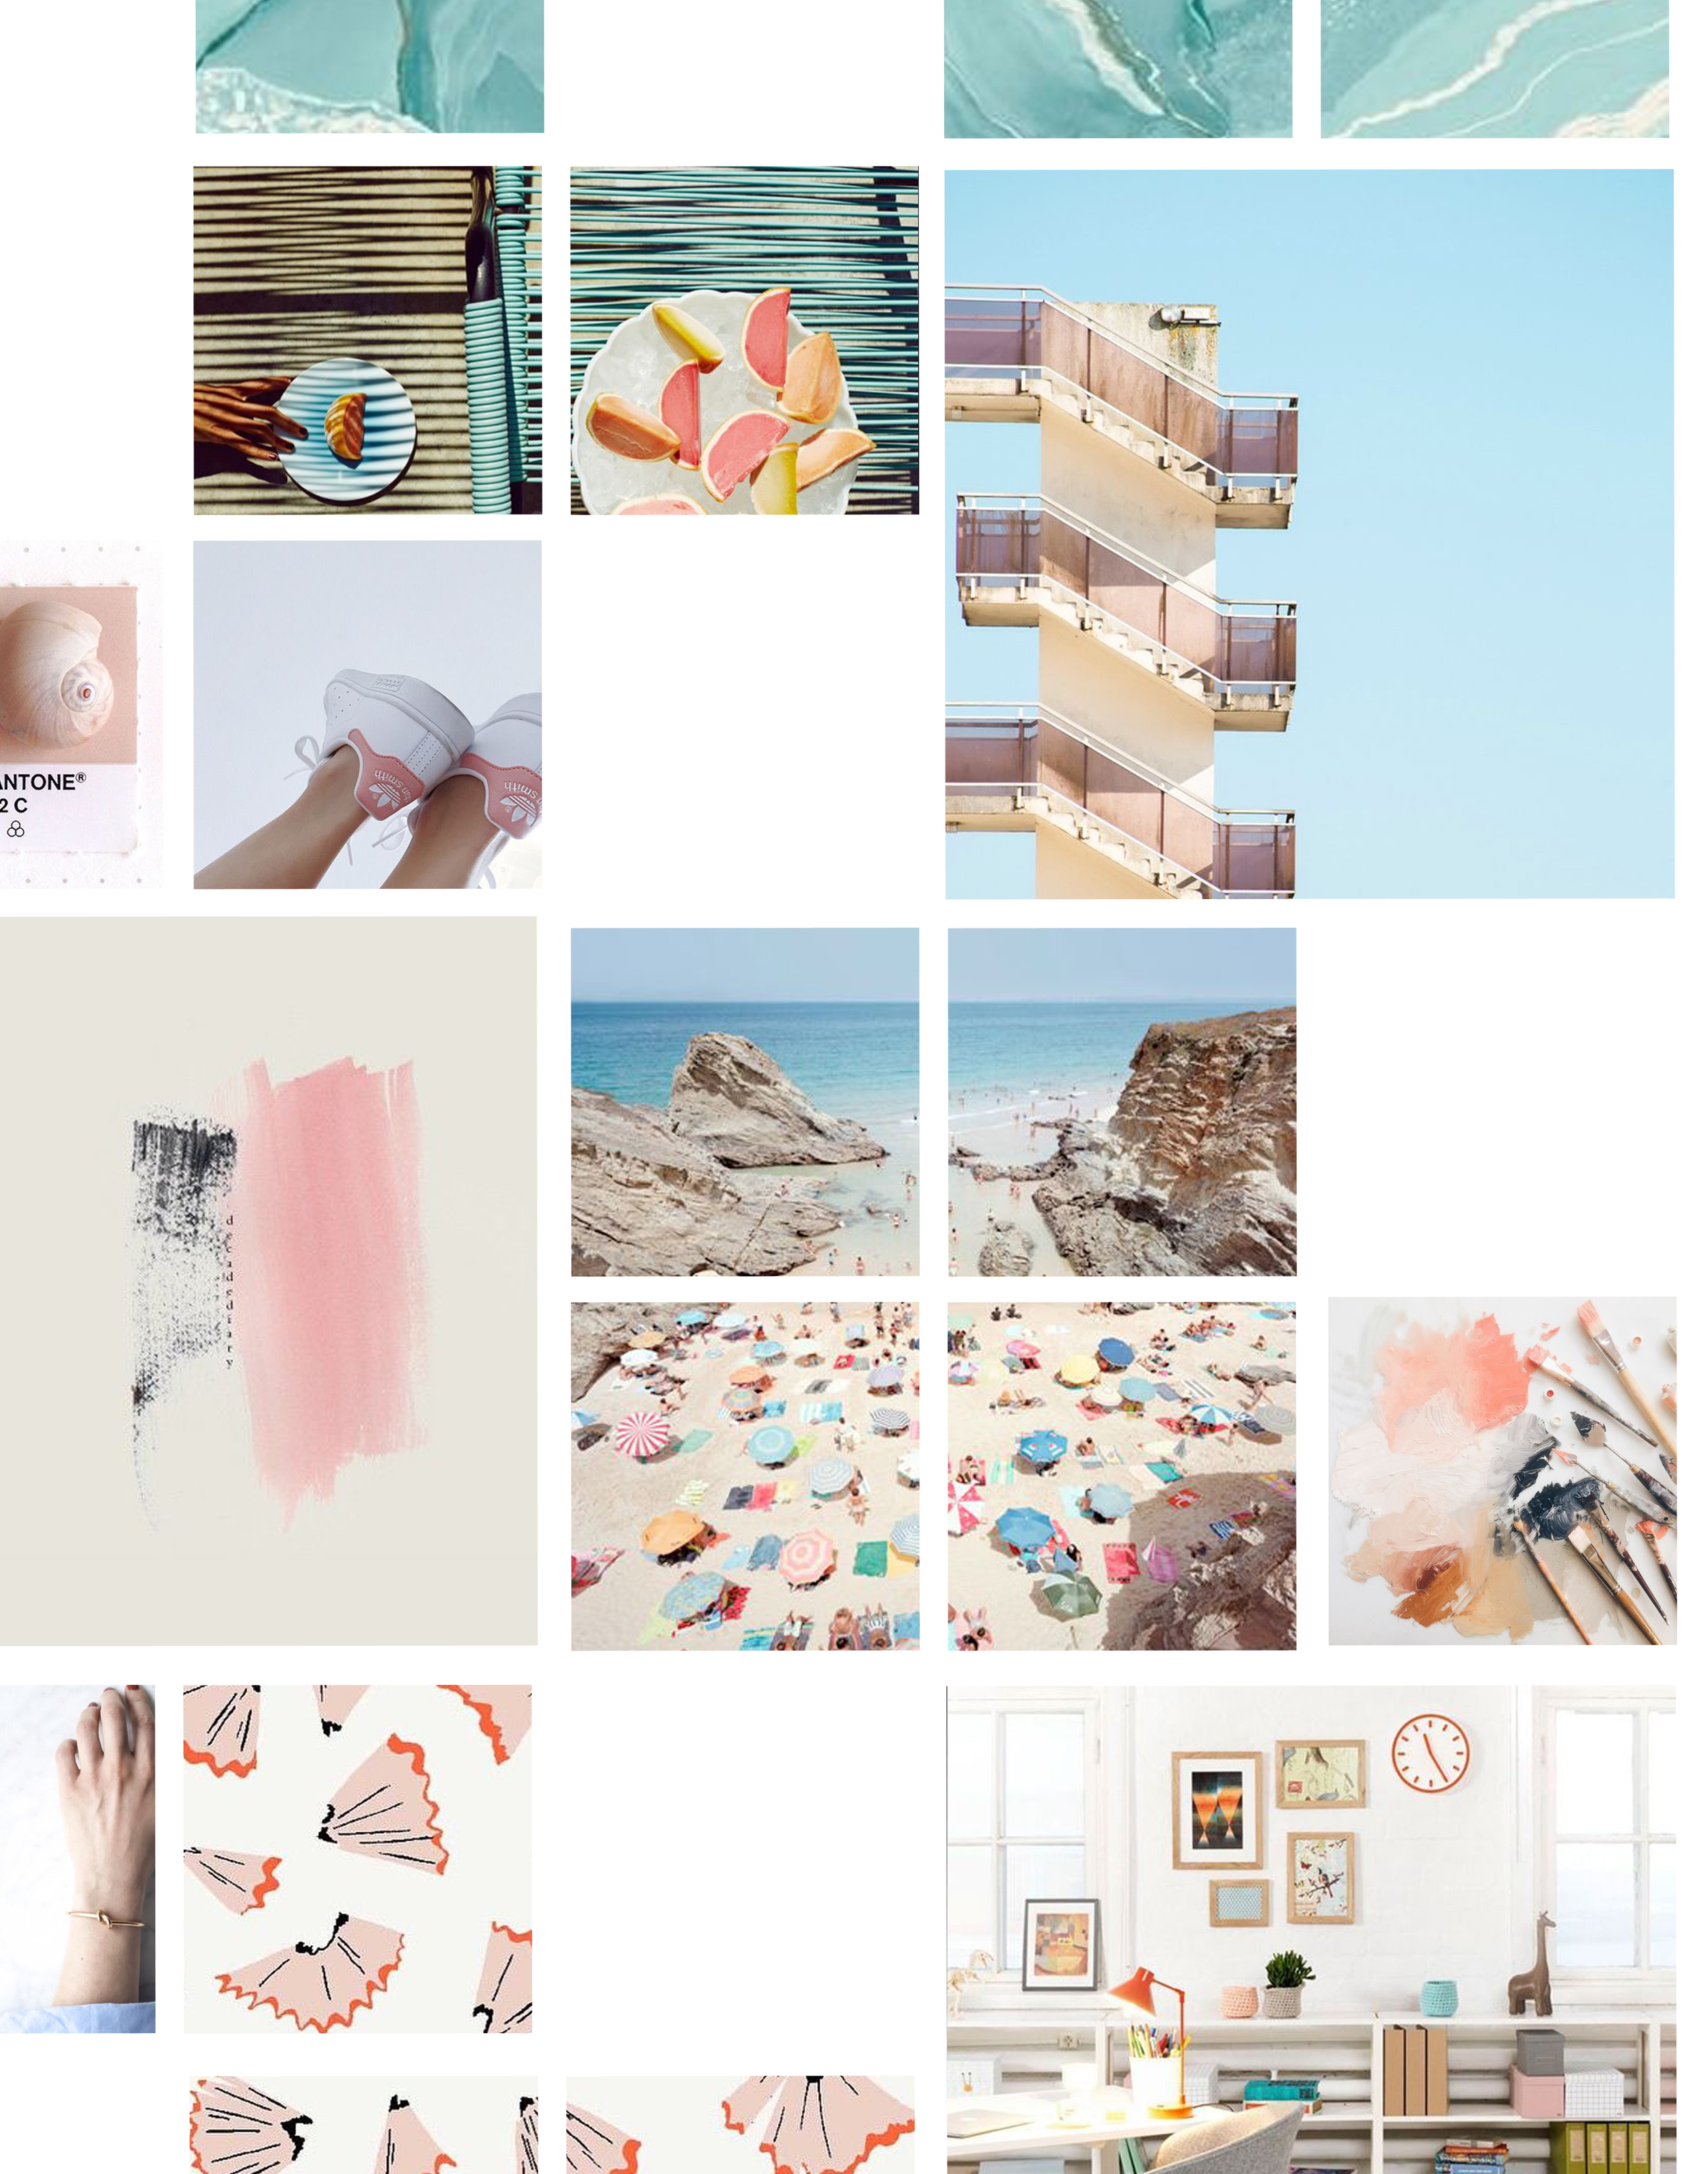 WEEKLY INSPIRATION WITH MONDAY MOOD BOARD 29 | THE PAPER CURATOR